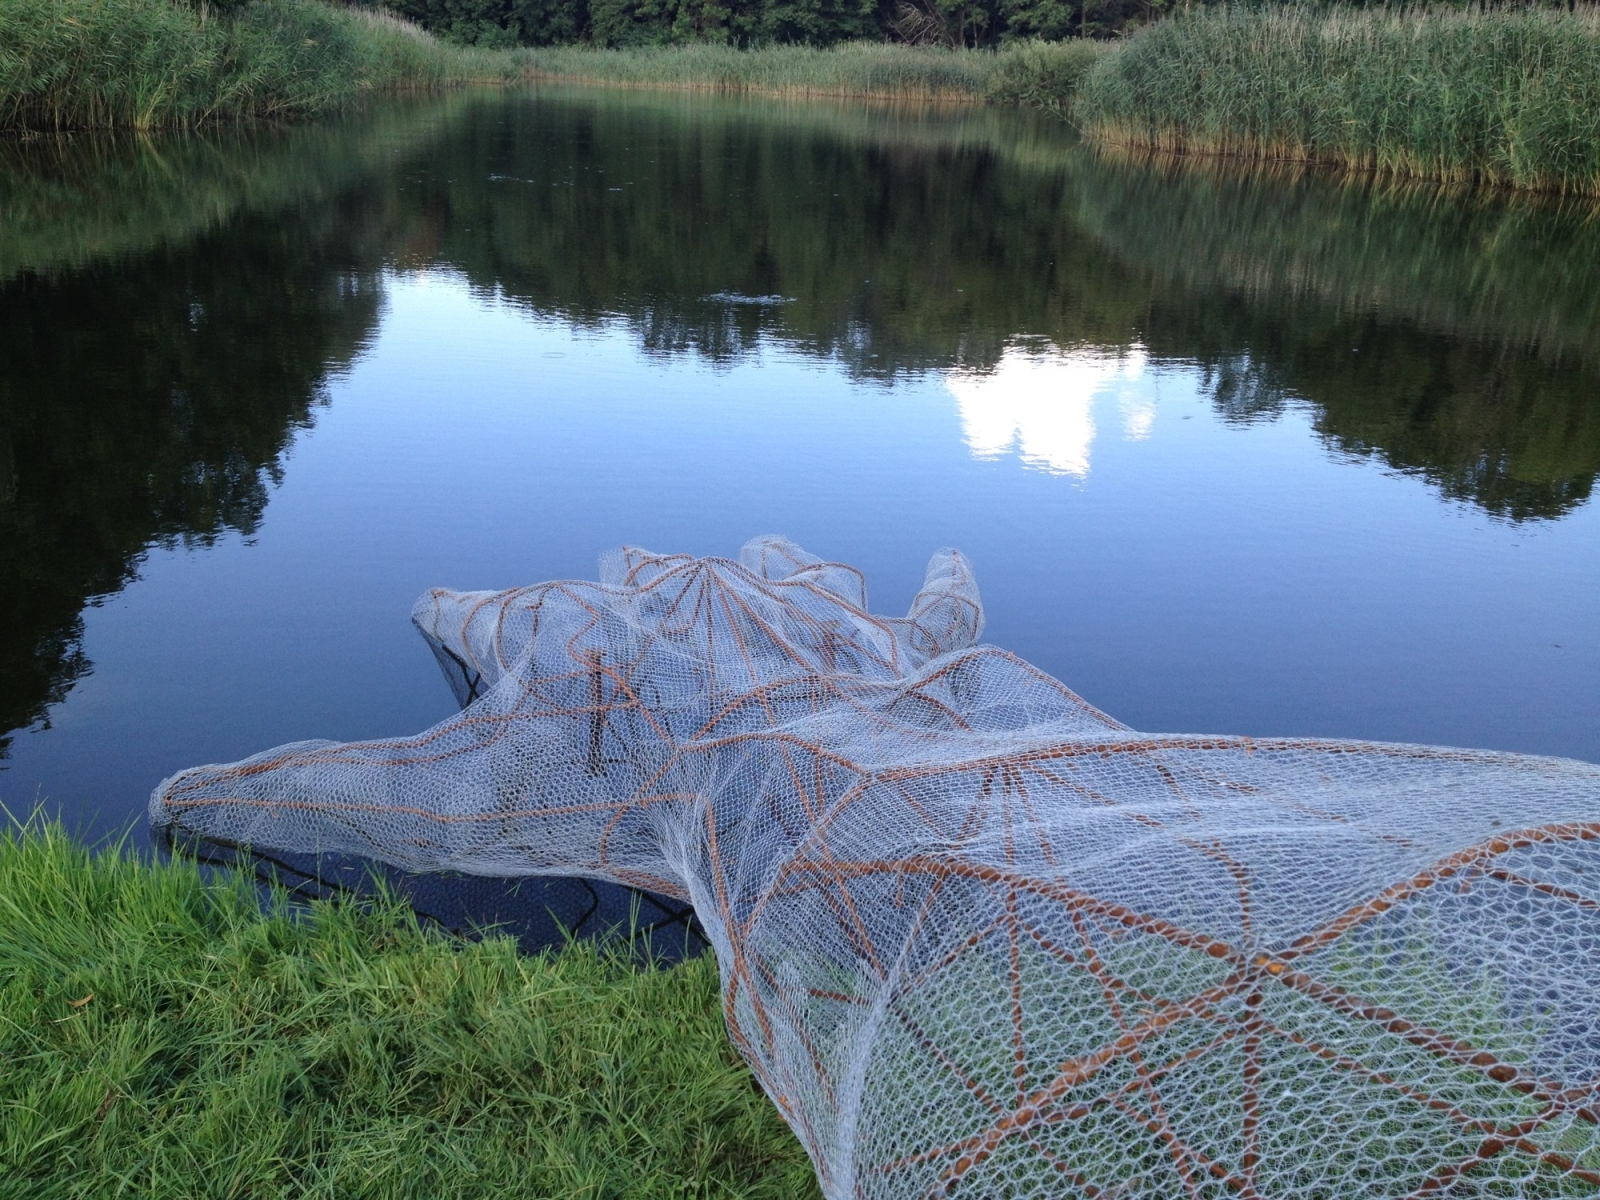 Testing the Waters, Sculpture, Steel and Hexagonal Wire Mesh, 2014, Schloss Trebnitz, Germany.